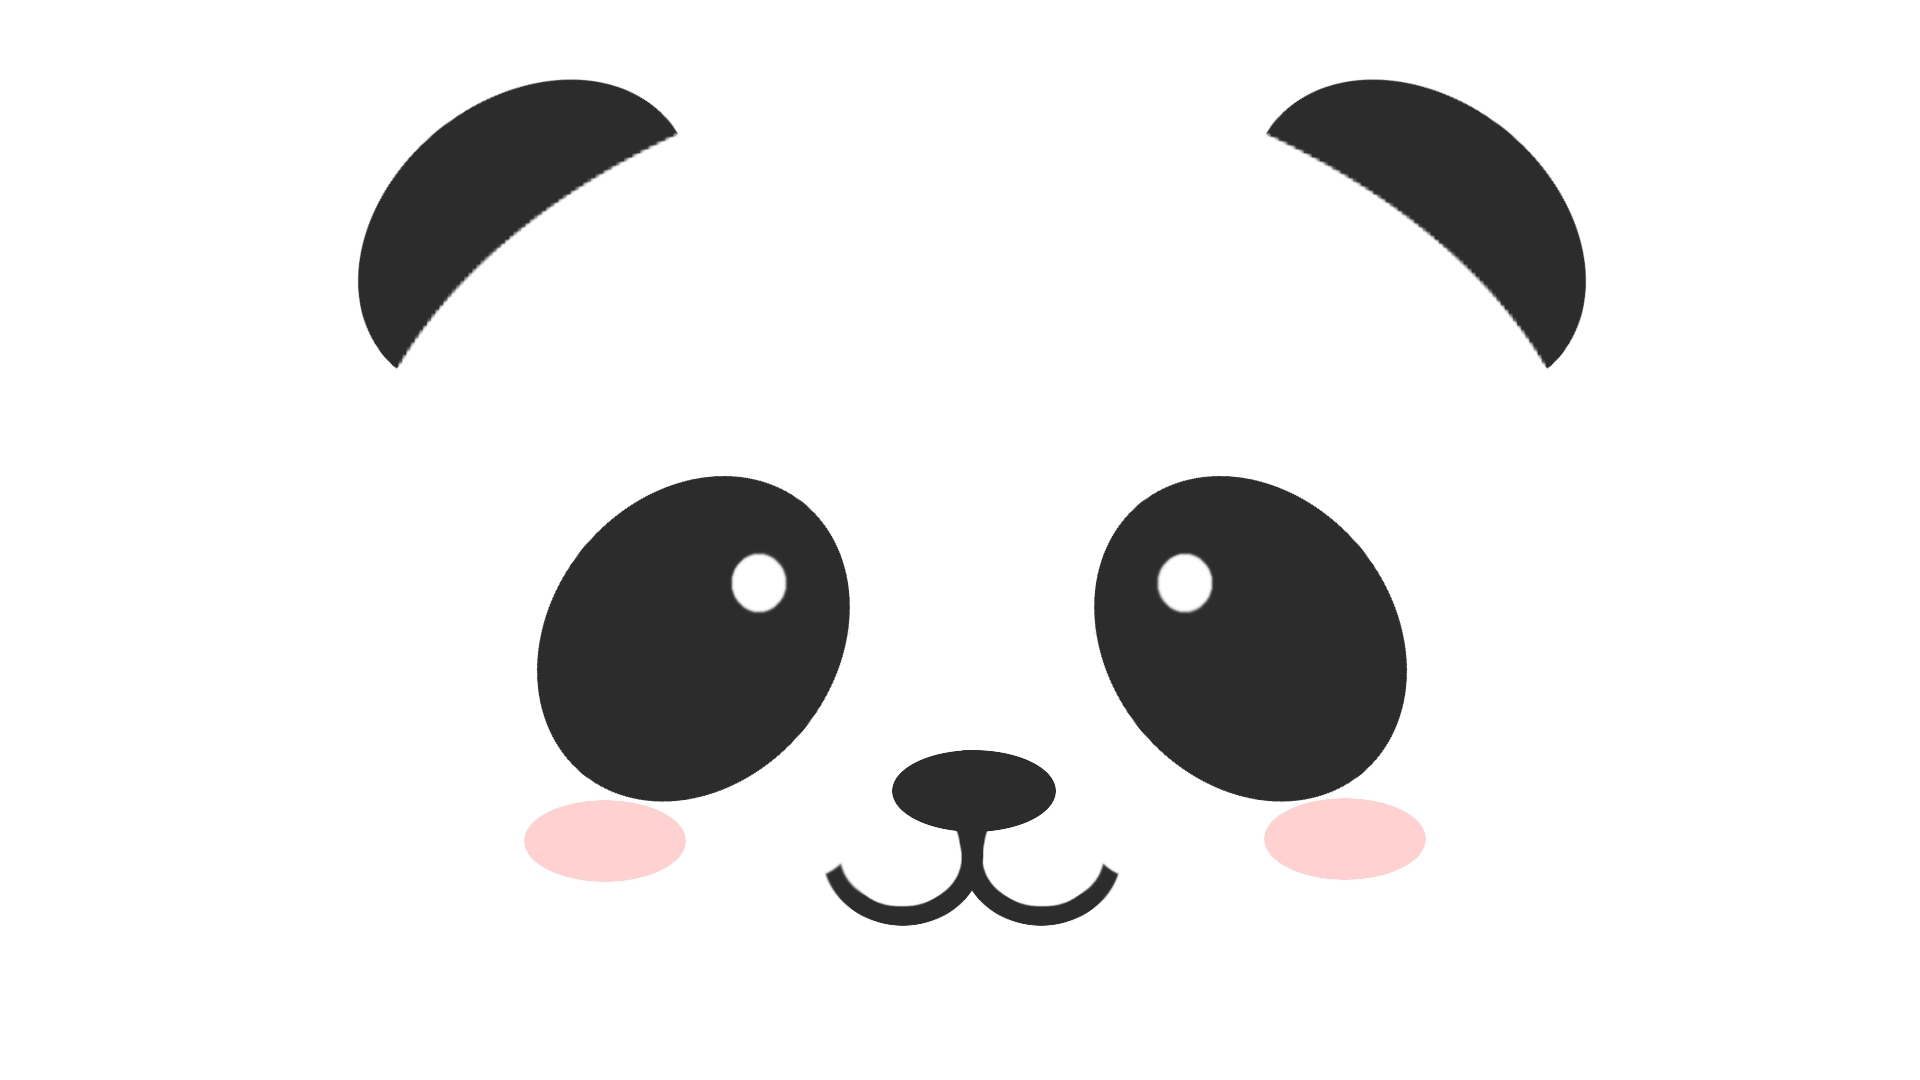 Panda Wallpapers, Pictures, Images - photo#1